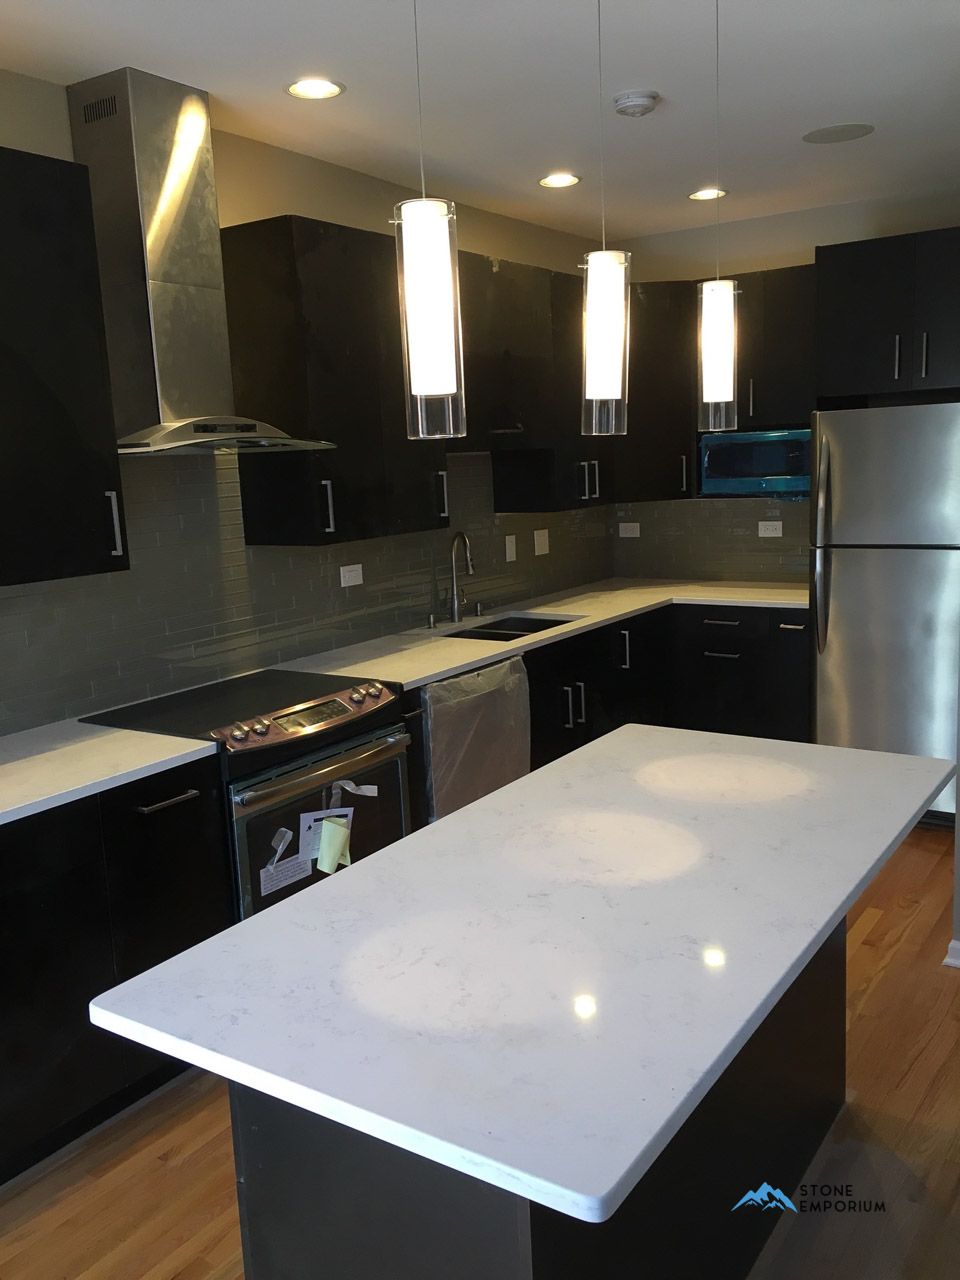 Best Price For Granite Countertops Chicago